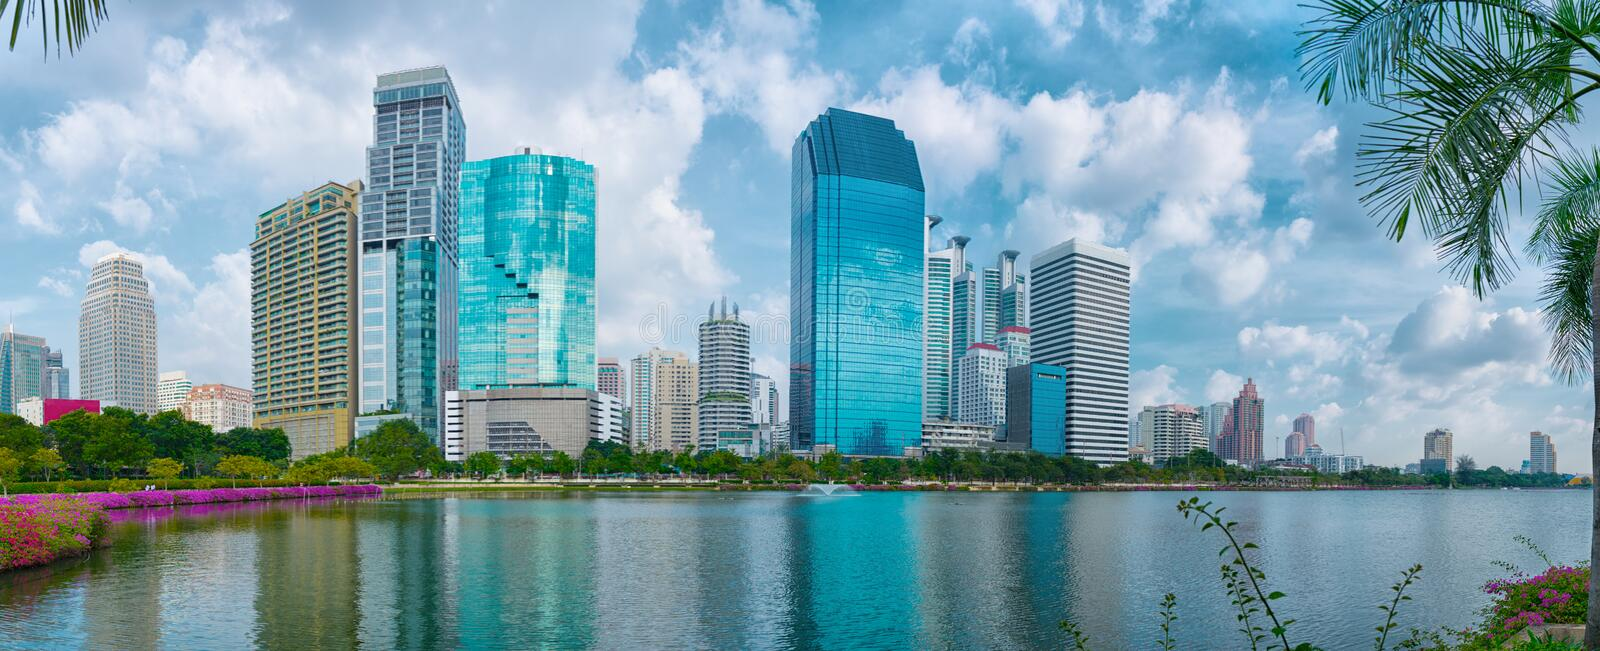 Skyscrapers in Bangkok. View from Lumpini park royalty free stock photography